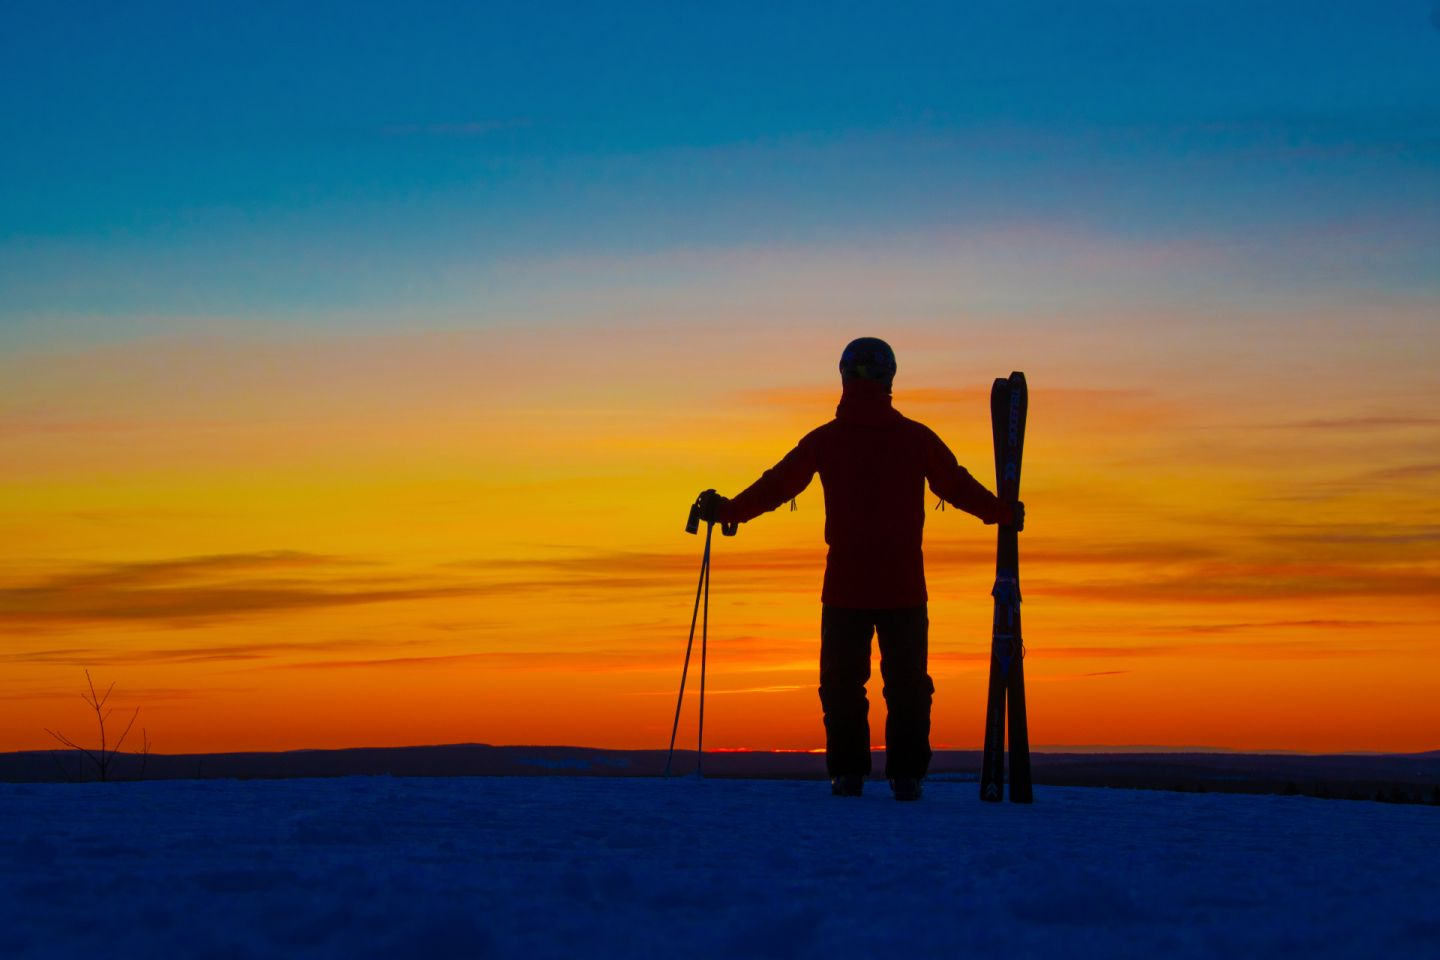 Enjoying an early sunset on a ski slope in Rovaniemi, Finland in winter